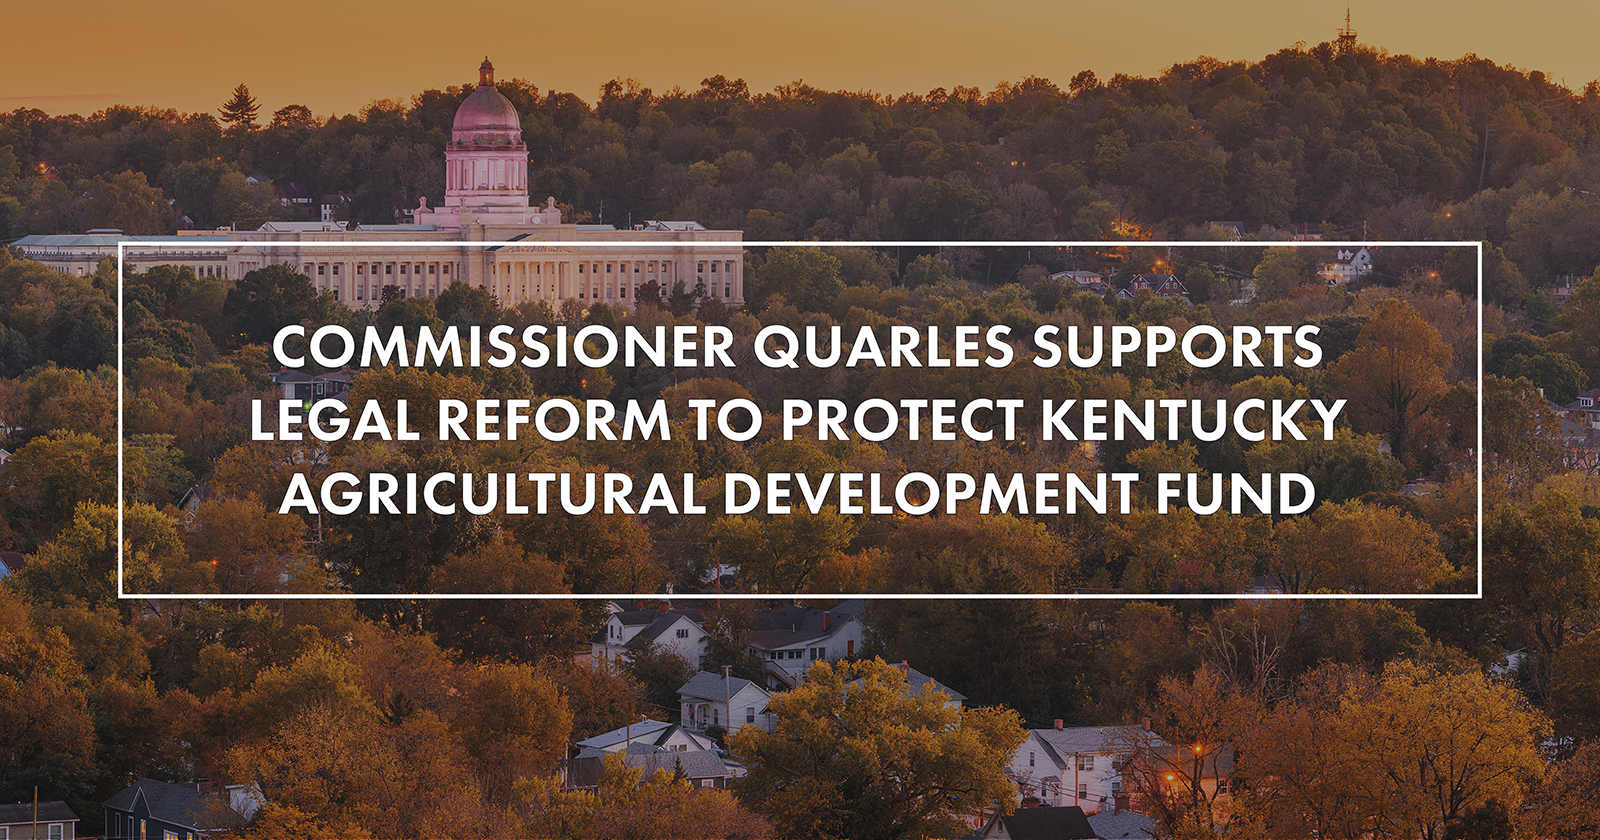 Quarles supports legal reform